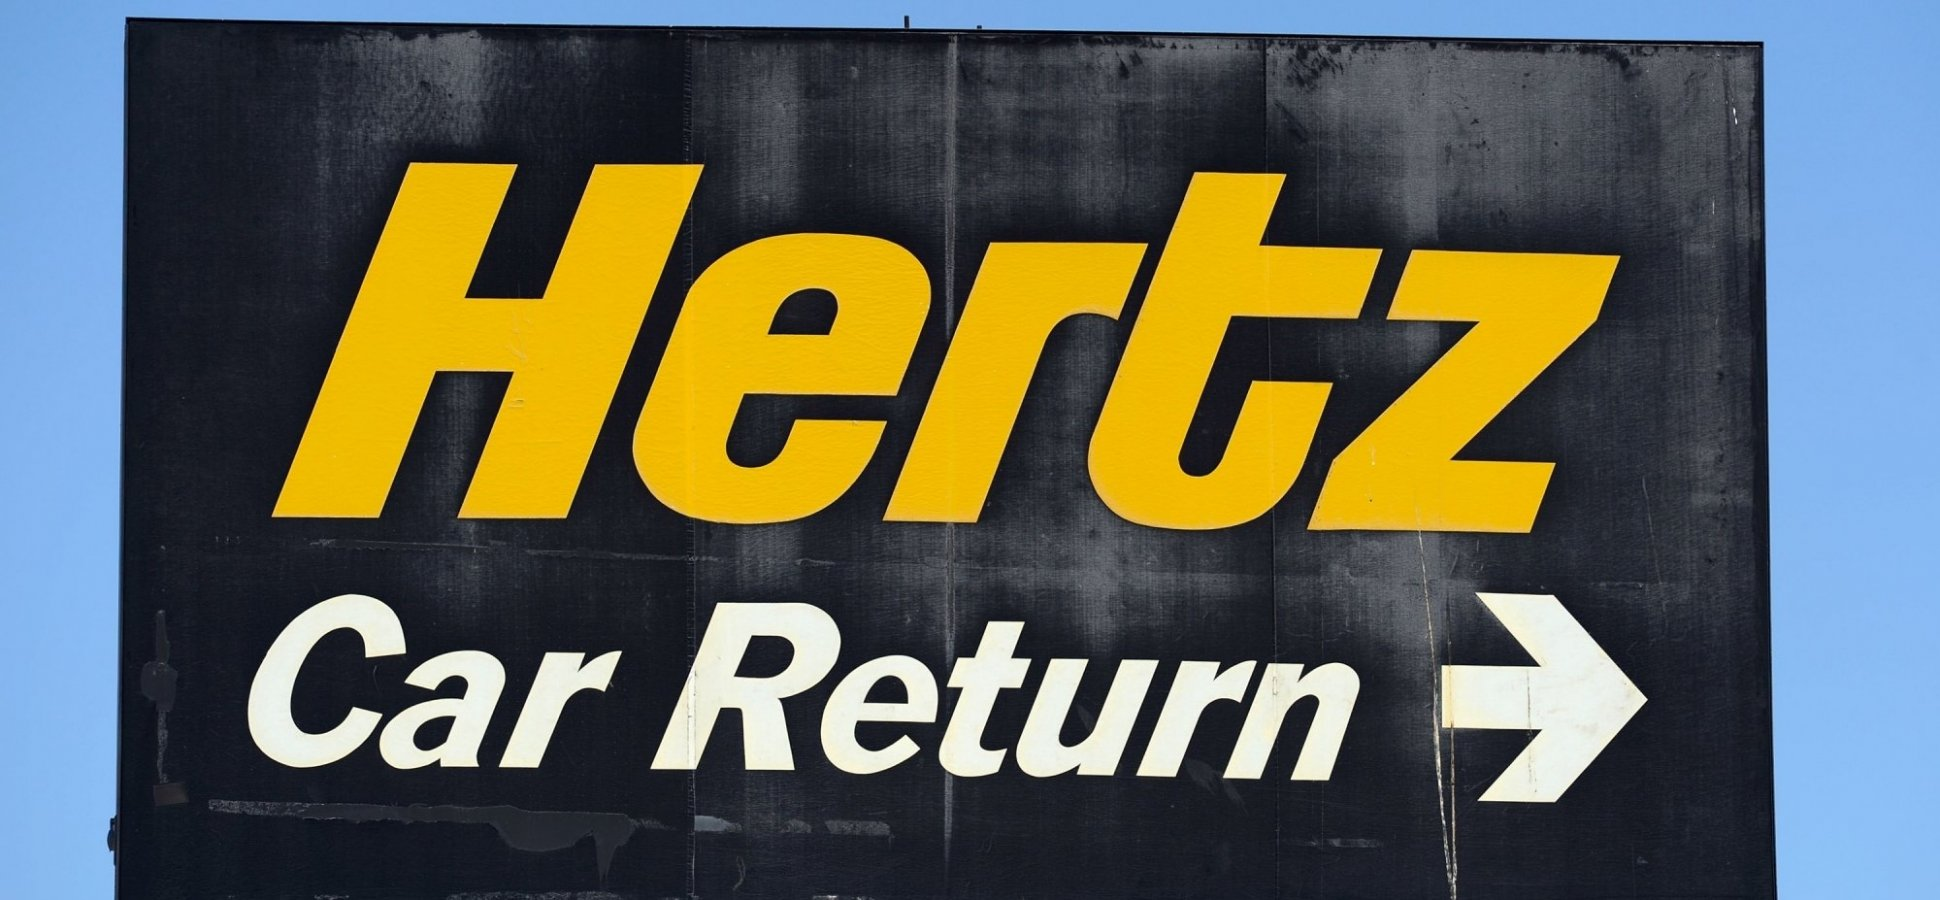 A Hertz Customer Rented Her Car Legitimately. Then She Was Confronted By Police